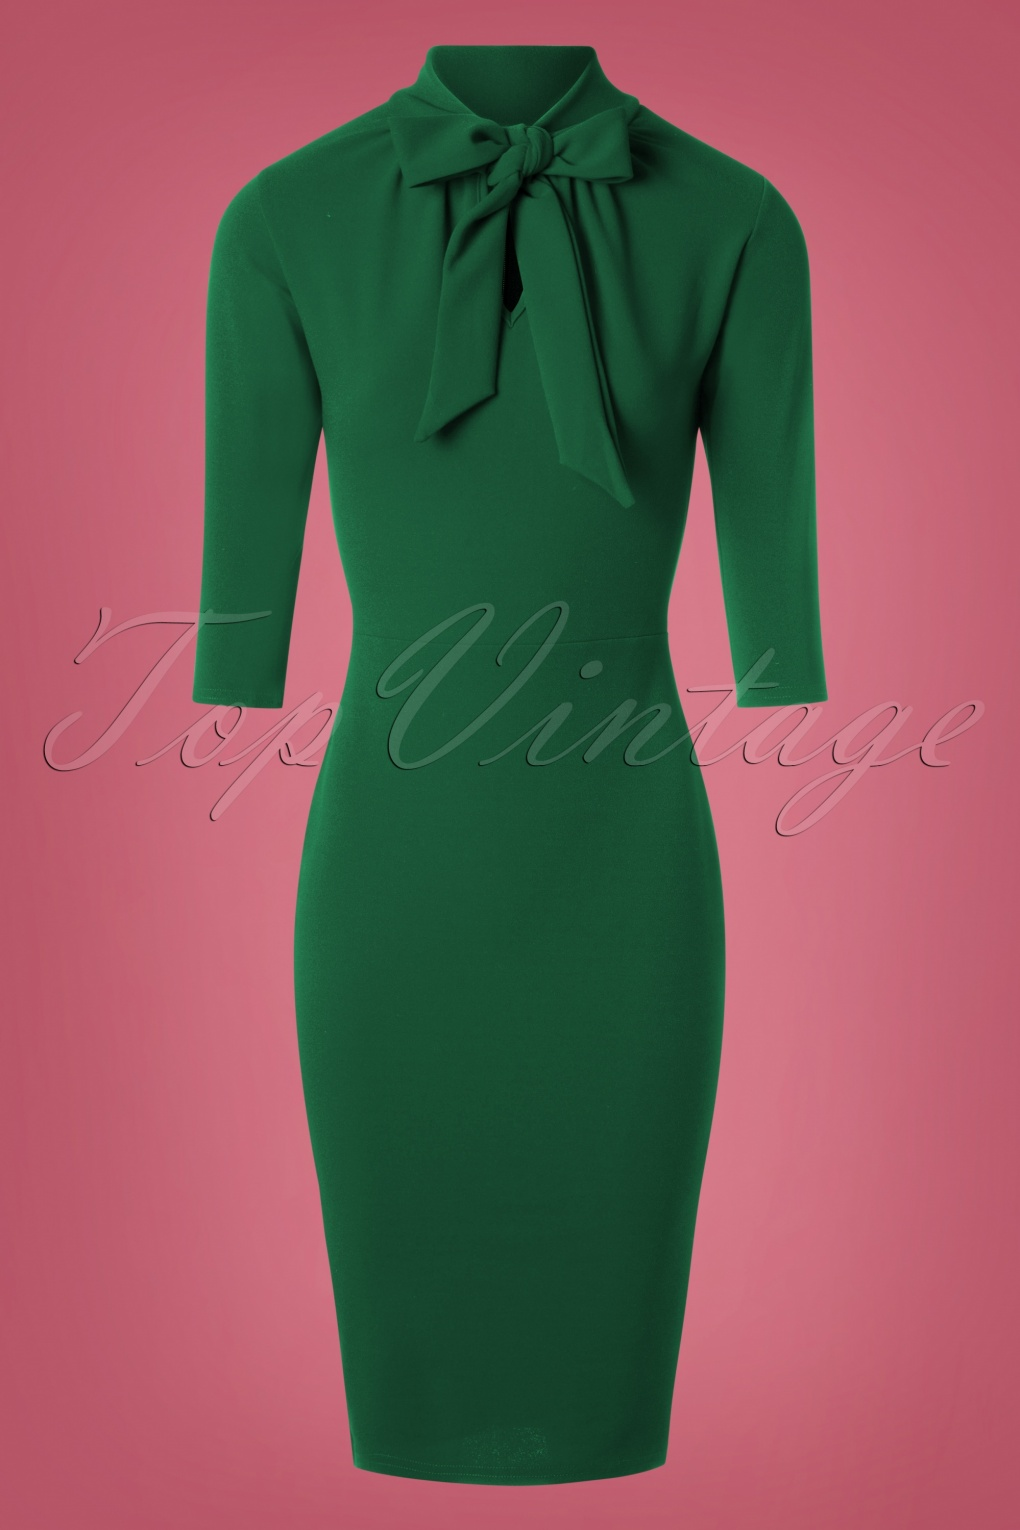 1960s Dresses | 60s Dresses Mod, Mini, Jakie O, Hippie 50s Lindsay Tie Neck Pencil Dress in Emerald Green £48.91 AT vintagedancer.com